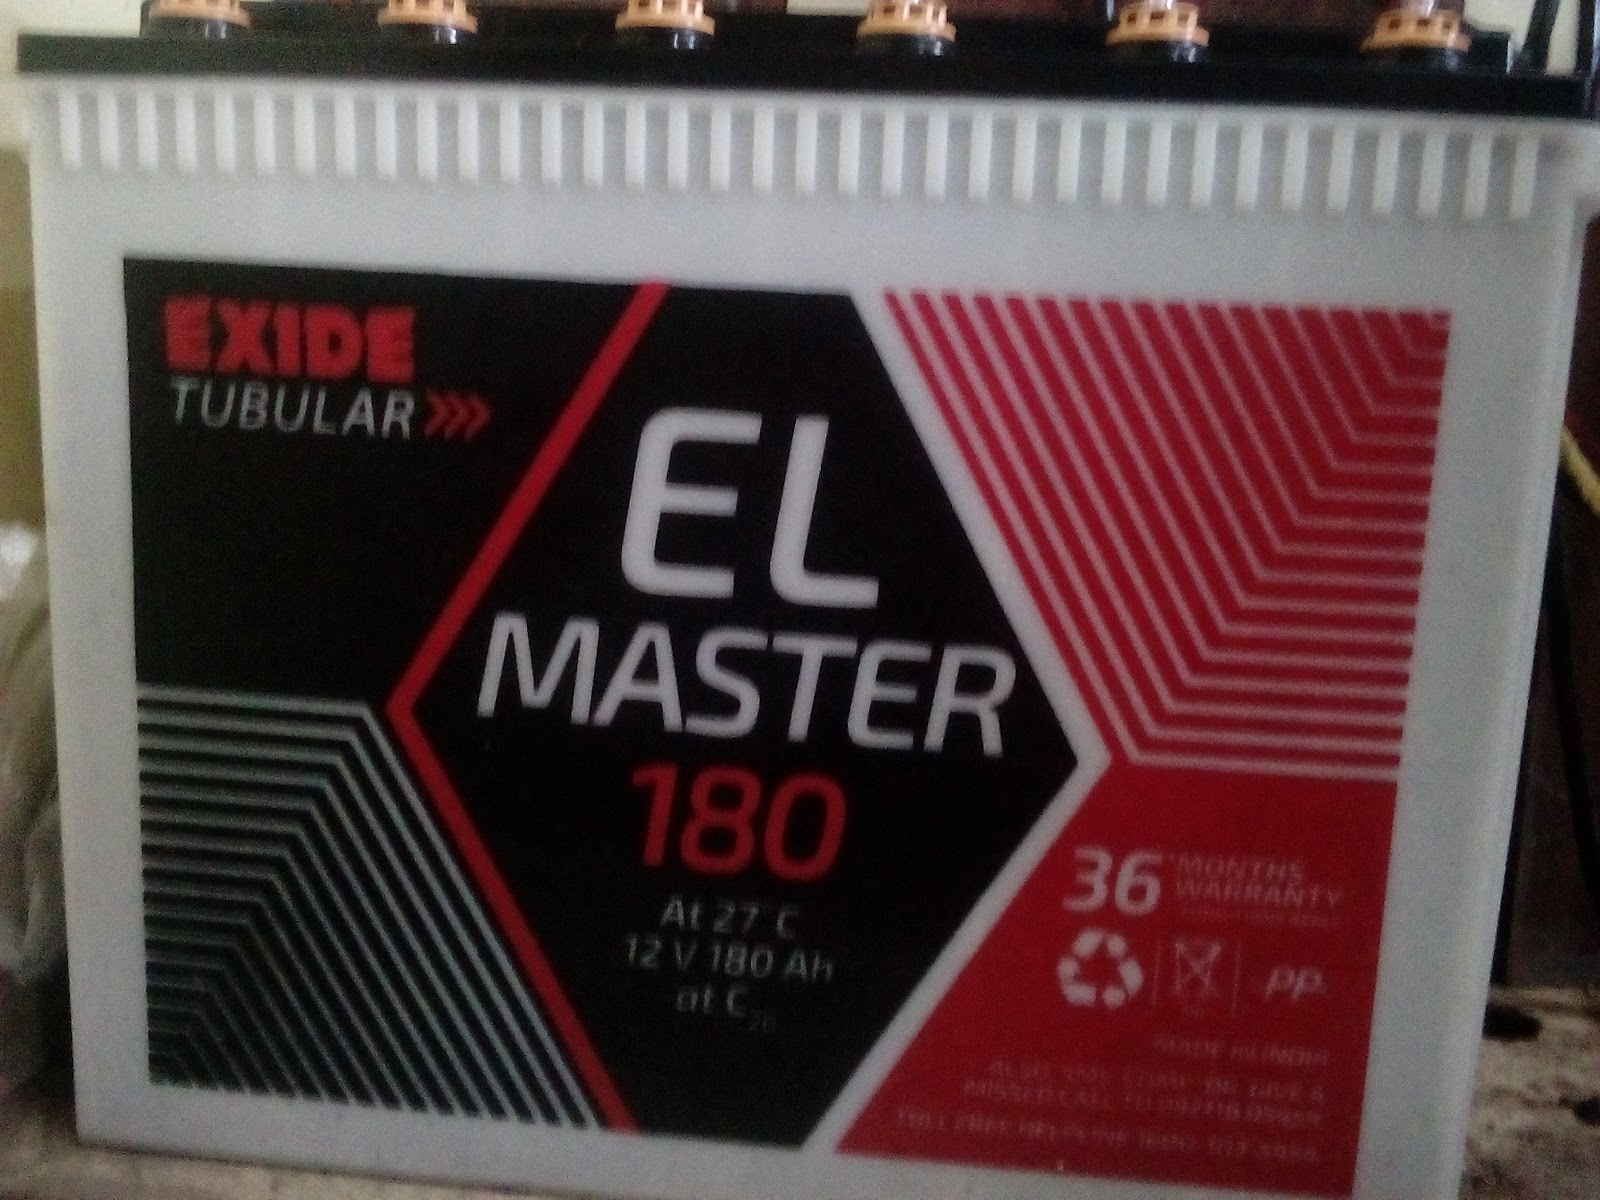 Exide Launched its ELM battery range with 3 years warranty.   We are the dealers for Exide ELM batteries in delhi NCR  For best prices of ELM range of Exide batteries.  Exide ELM 120 Exide ELM 130 Exide ELM 130 Exide ELM 8500  Contact Us  http://www.cosmicsystems.in/  9910005330  9871746717